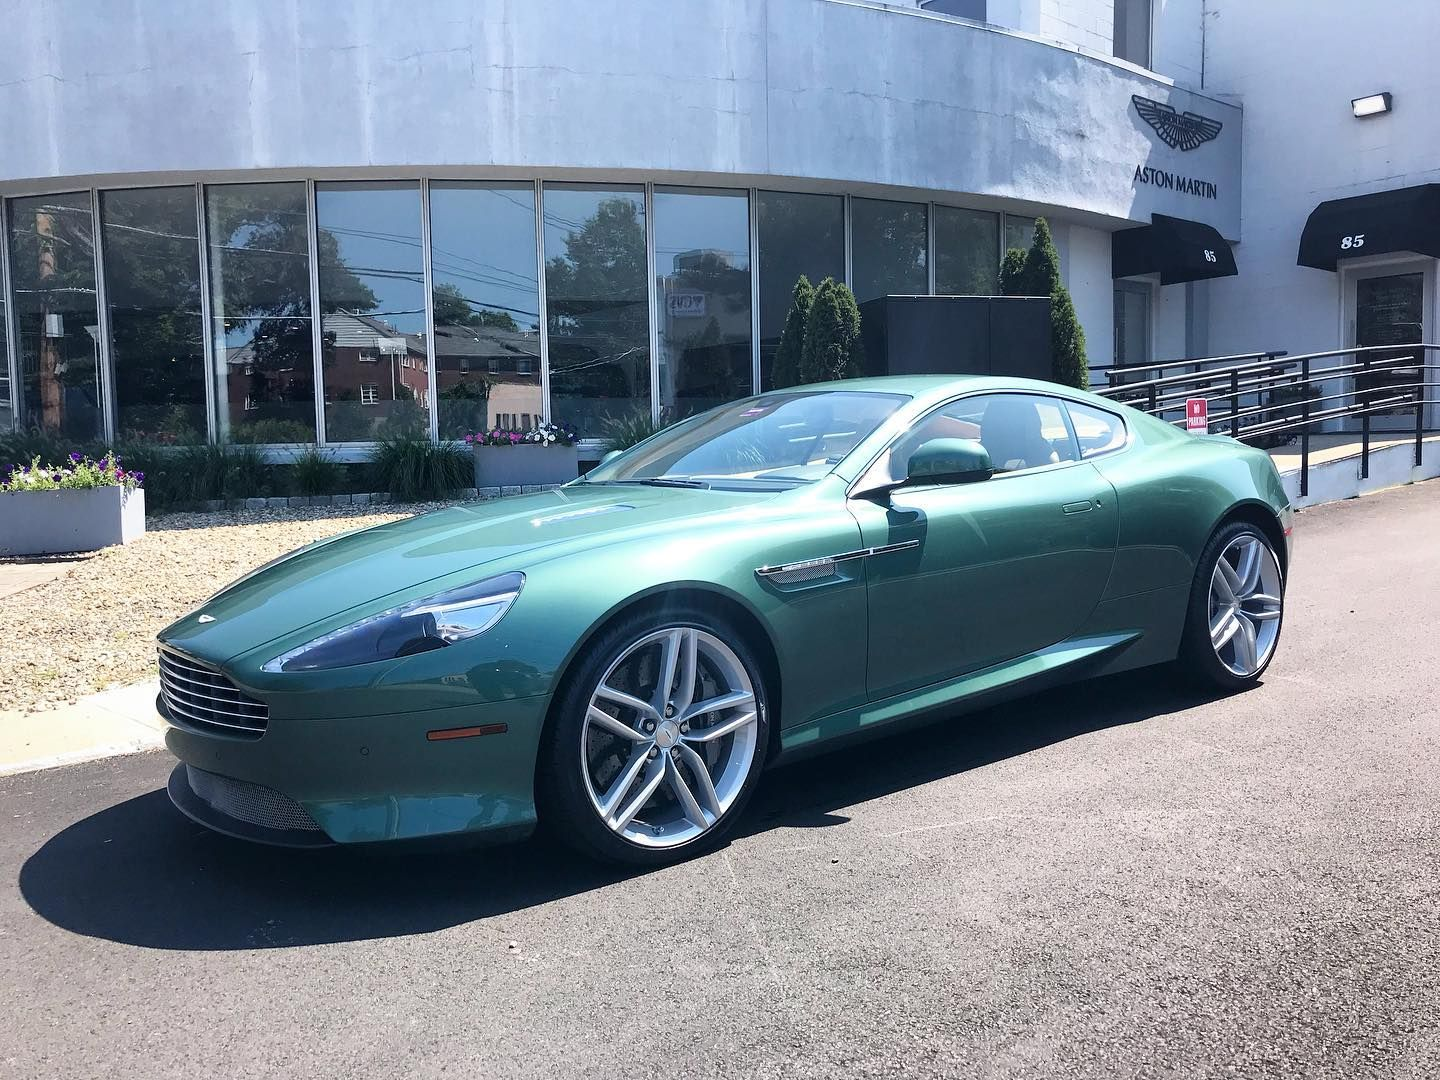 always nice to see this green db9 for service new tires and prepped for a cross country trip astonmar in 2020 cross country trip new tyres aston martin pinterest